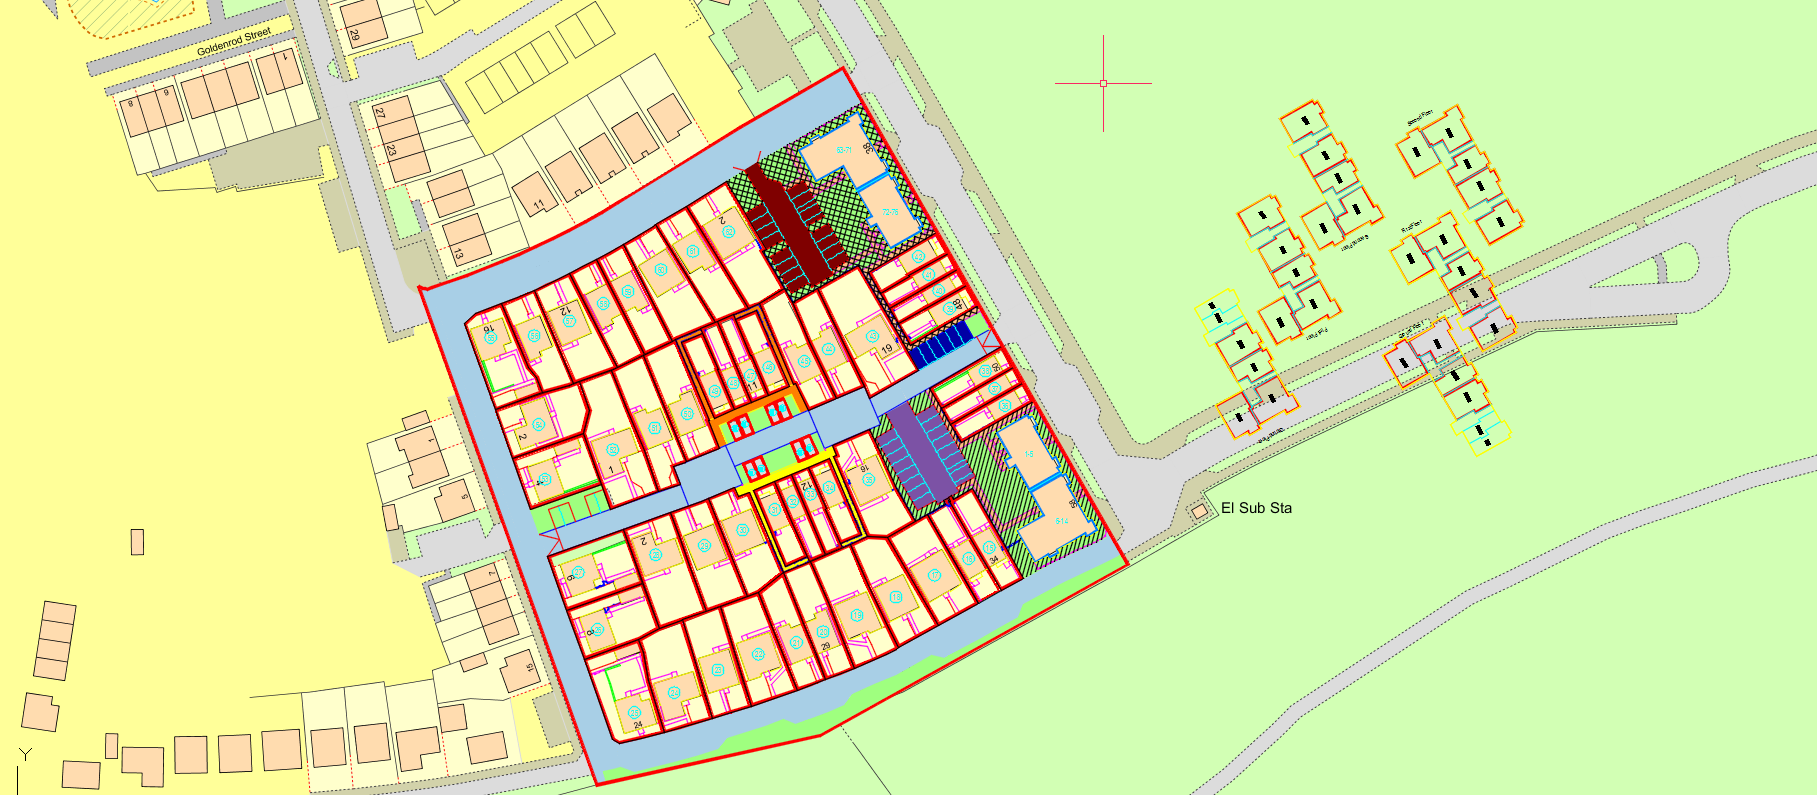 A building plan showing individual flats within a property.